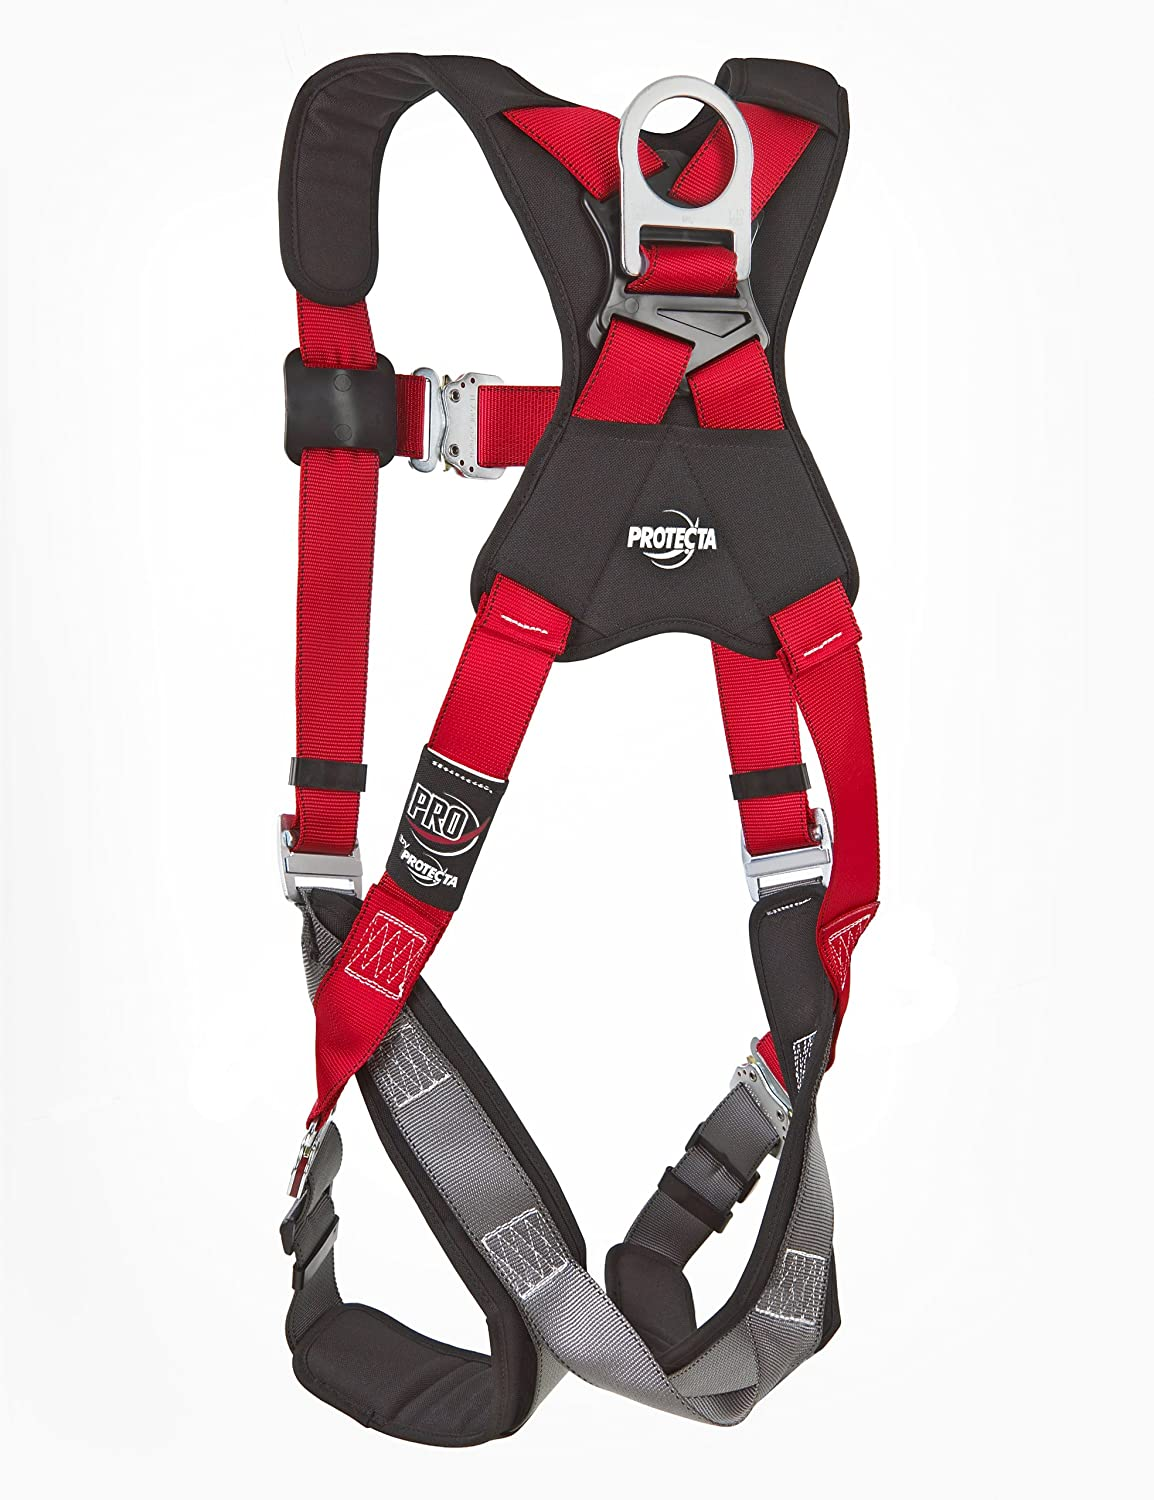 Size X-Large with 3 D-Rings Quick Connect Buckle Legs 3M Protecta 1191261 Fall Protection Full Body Harness 420 Pound Capacity Red//Gray